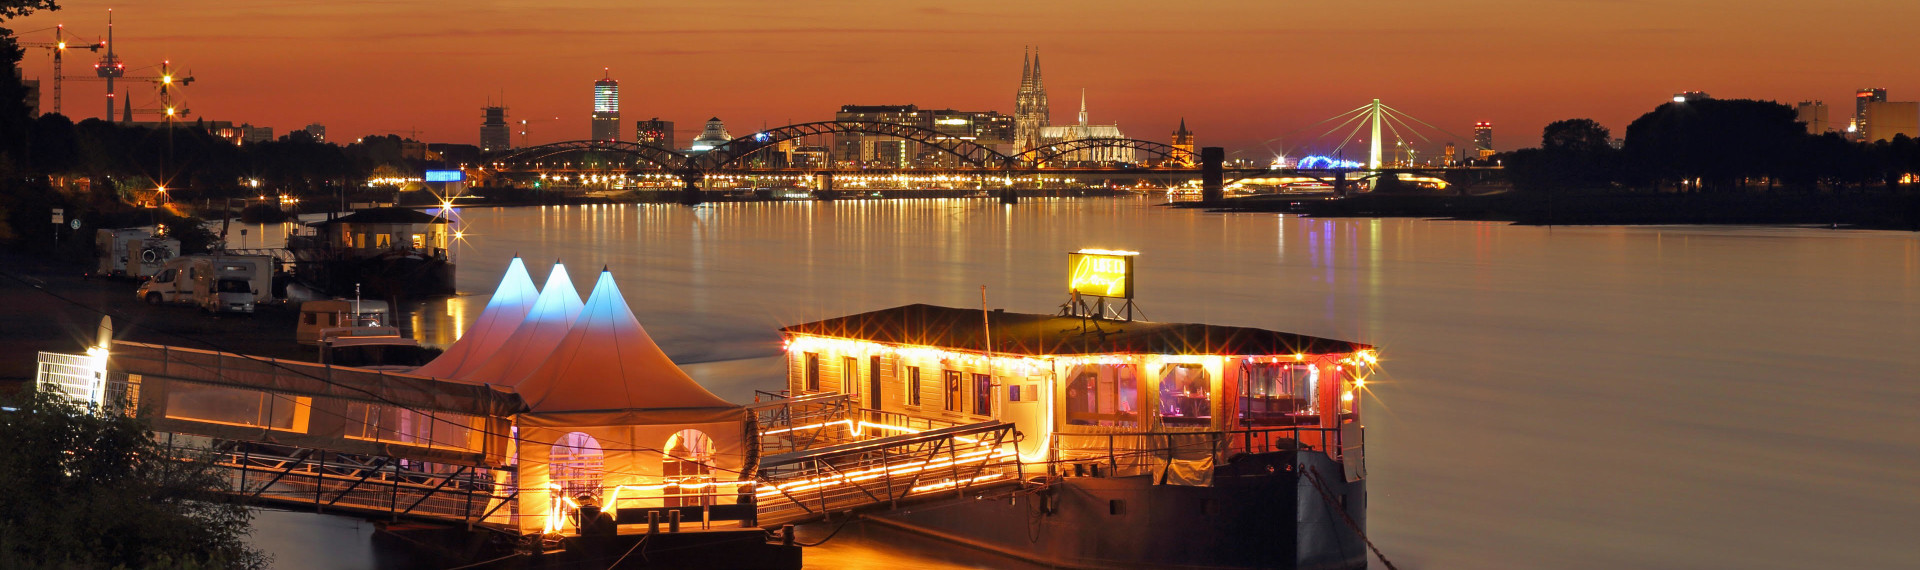 Cologne Party boat image